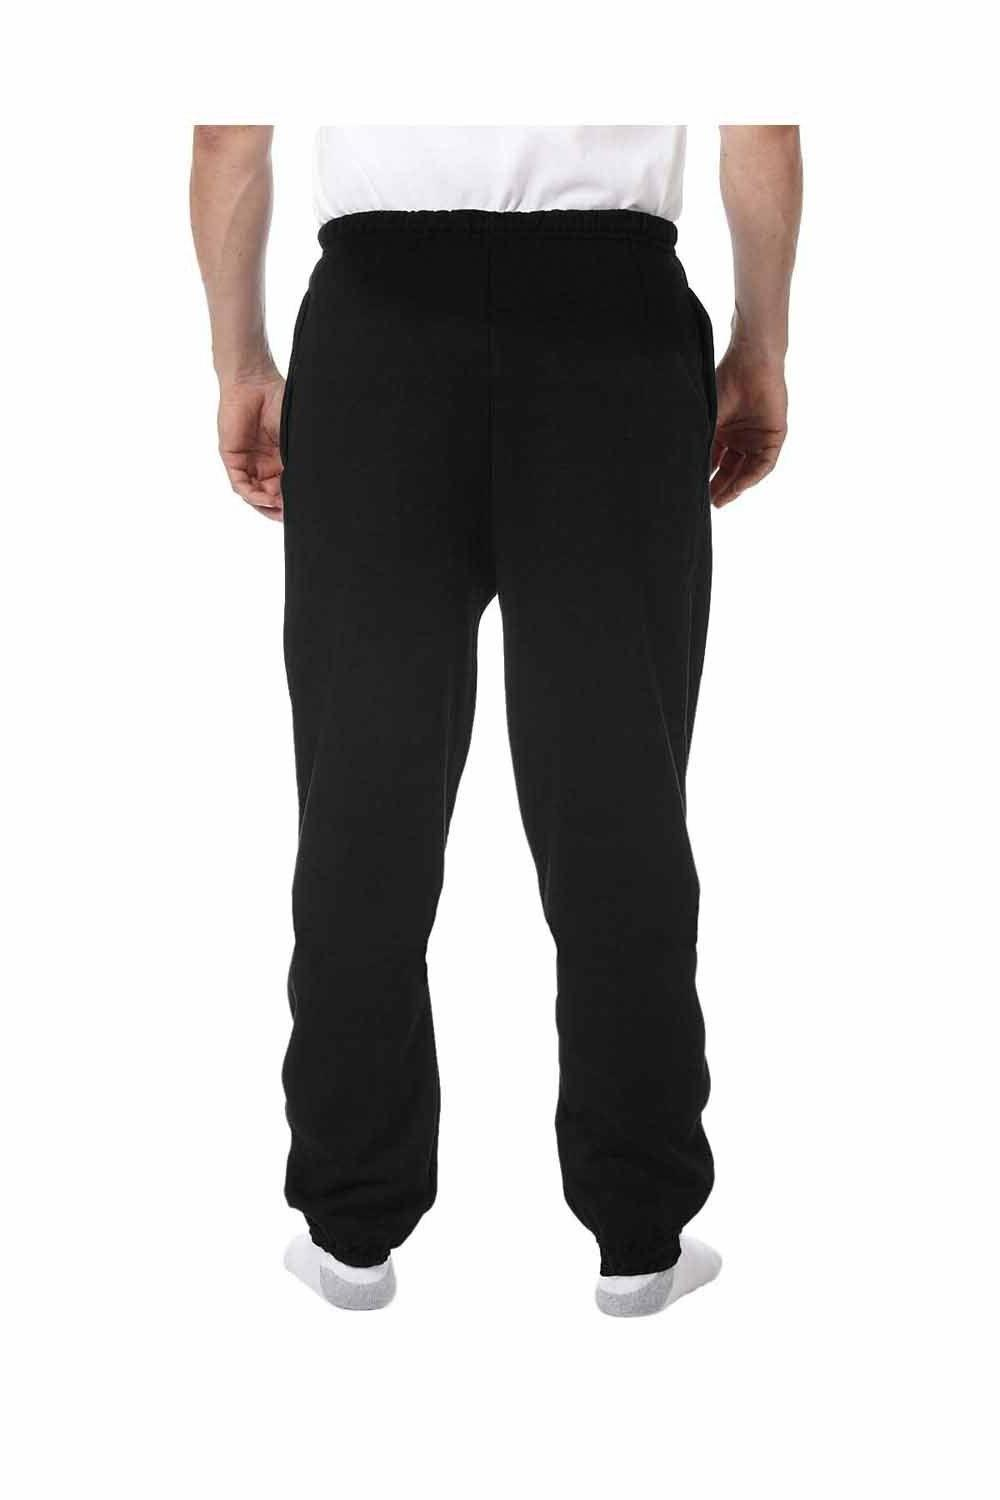 New With Men's Champion X Slim Fit Fleece Jogger Pants Sweatpants